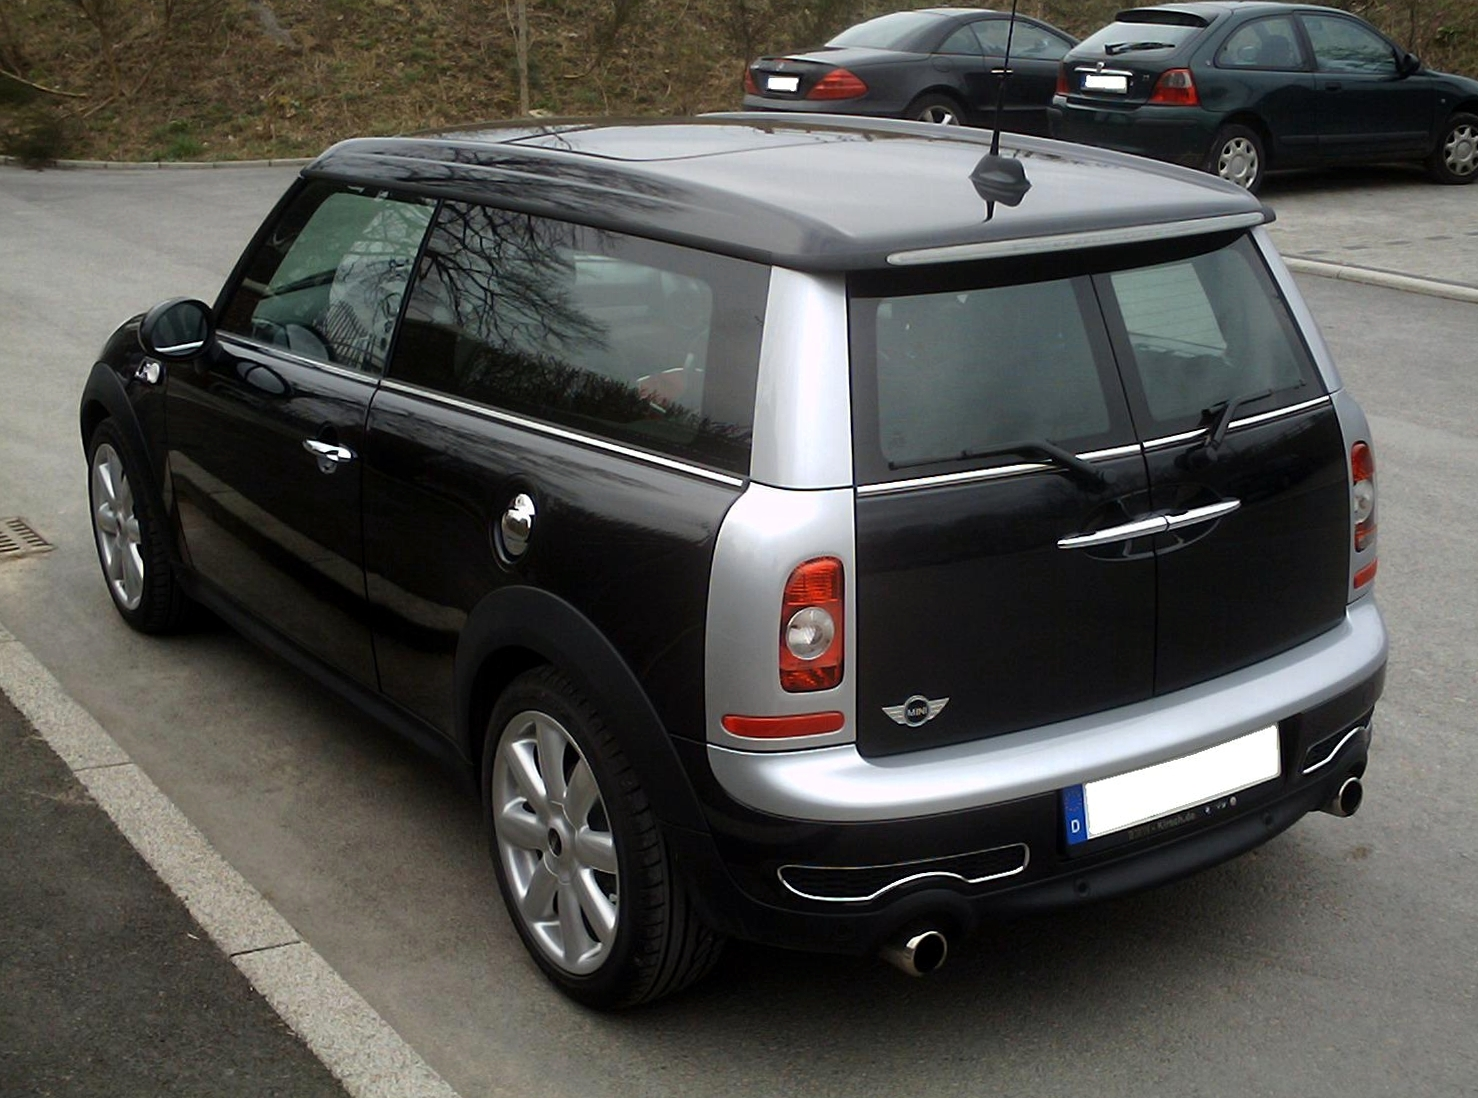 mini clubman 2009 review amazing pictures and images look at the car. Black Bedroom Furniture Sets. Home Design Ideas